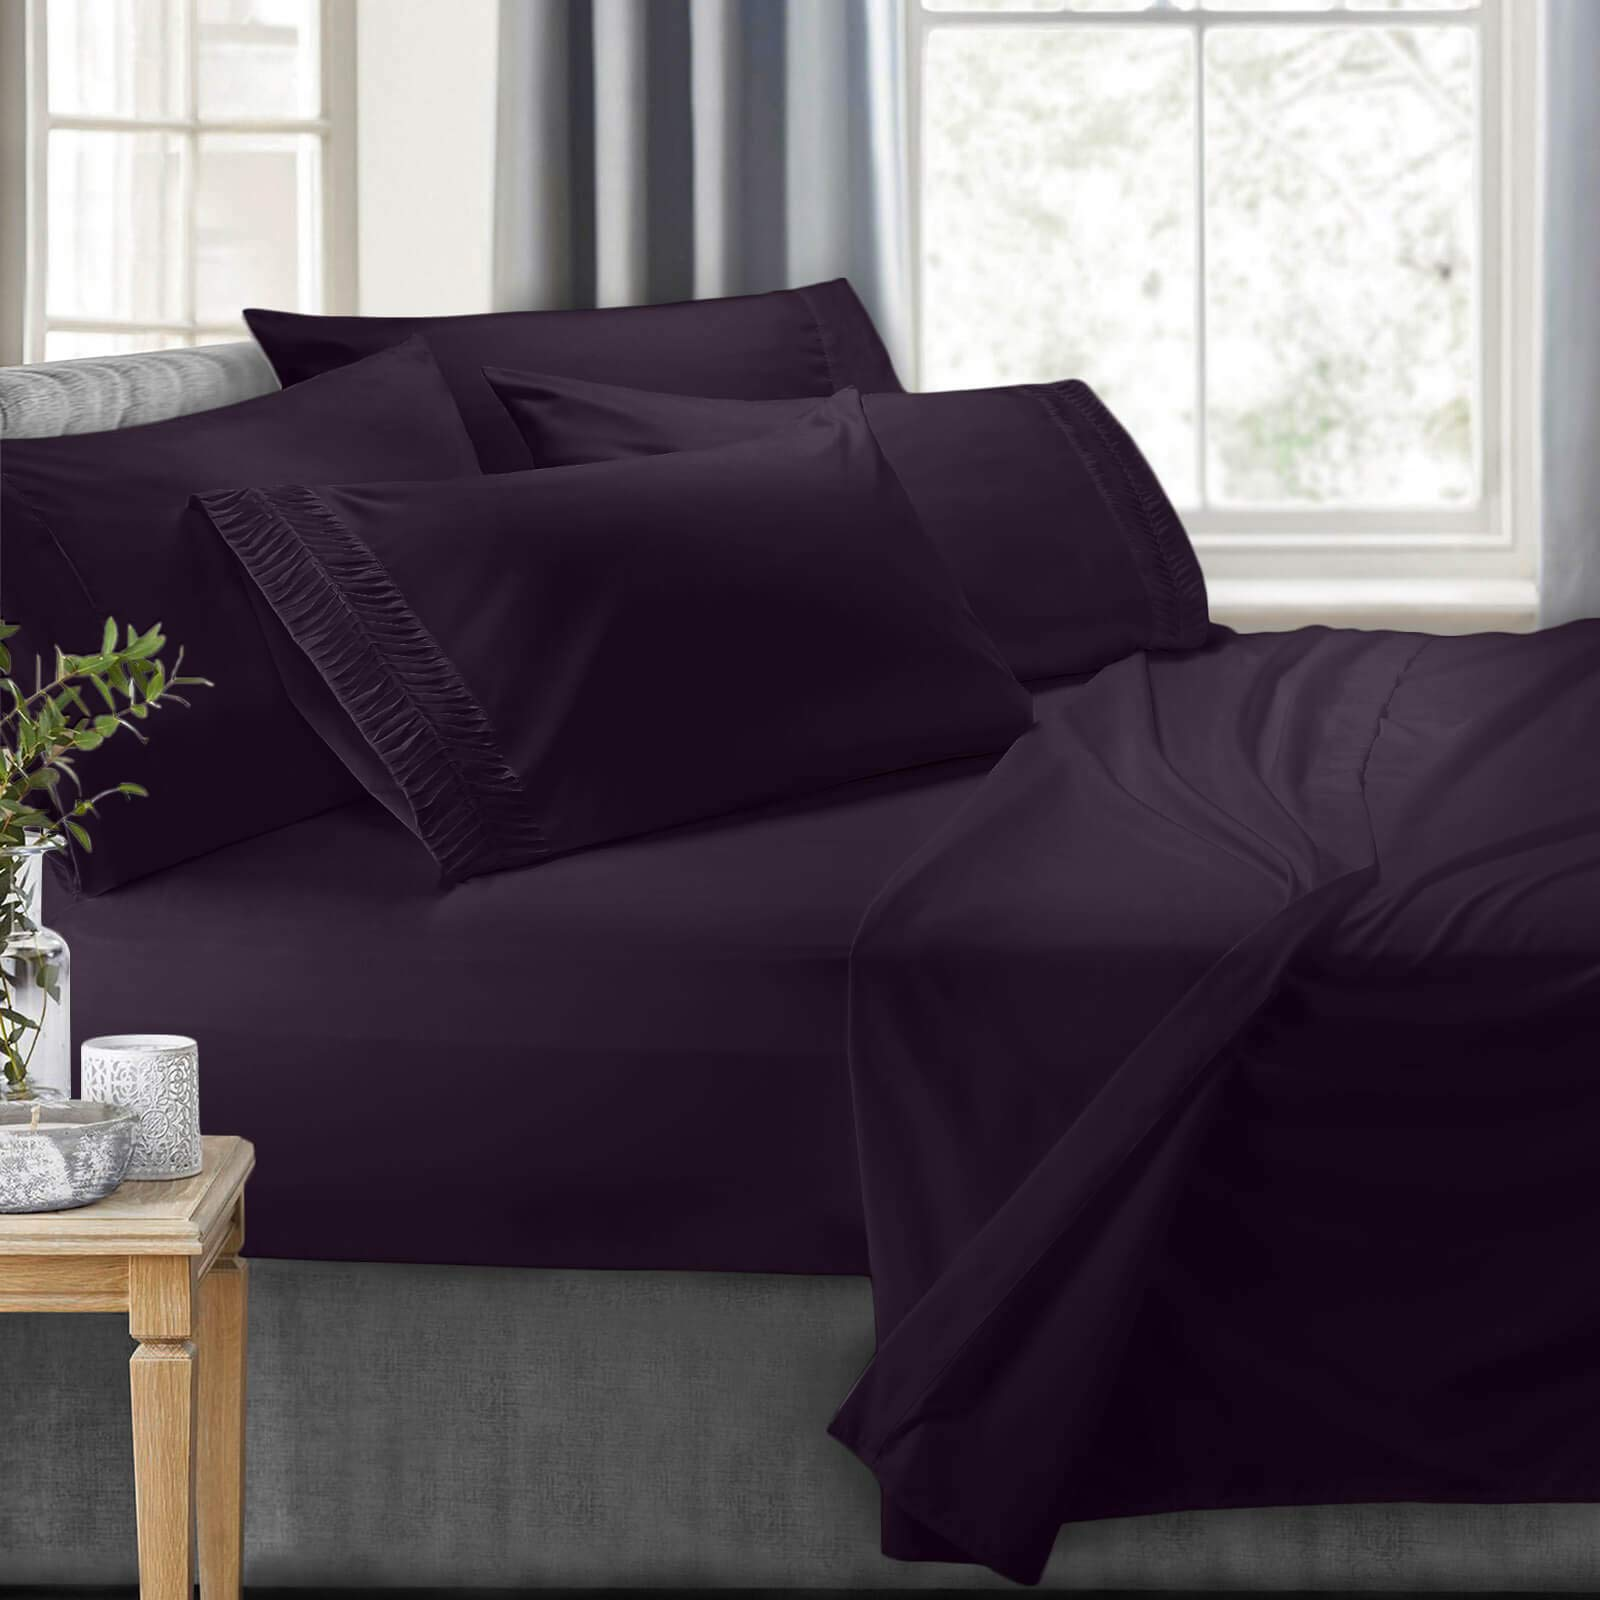 Clara Clark 7-Piece Bed Sheets - Luxury Pleated Sheets Set, Bedding Sheet Set, 100% Soft Brushed Microfiber Flat Sheet, Fitted Sheet, Pillowcases Cool & Breathable - Split King - Eggplant